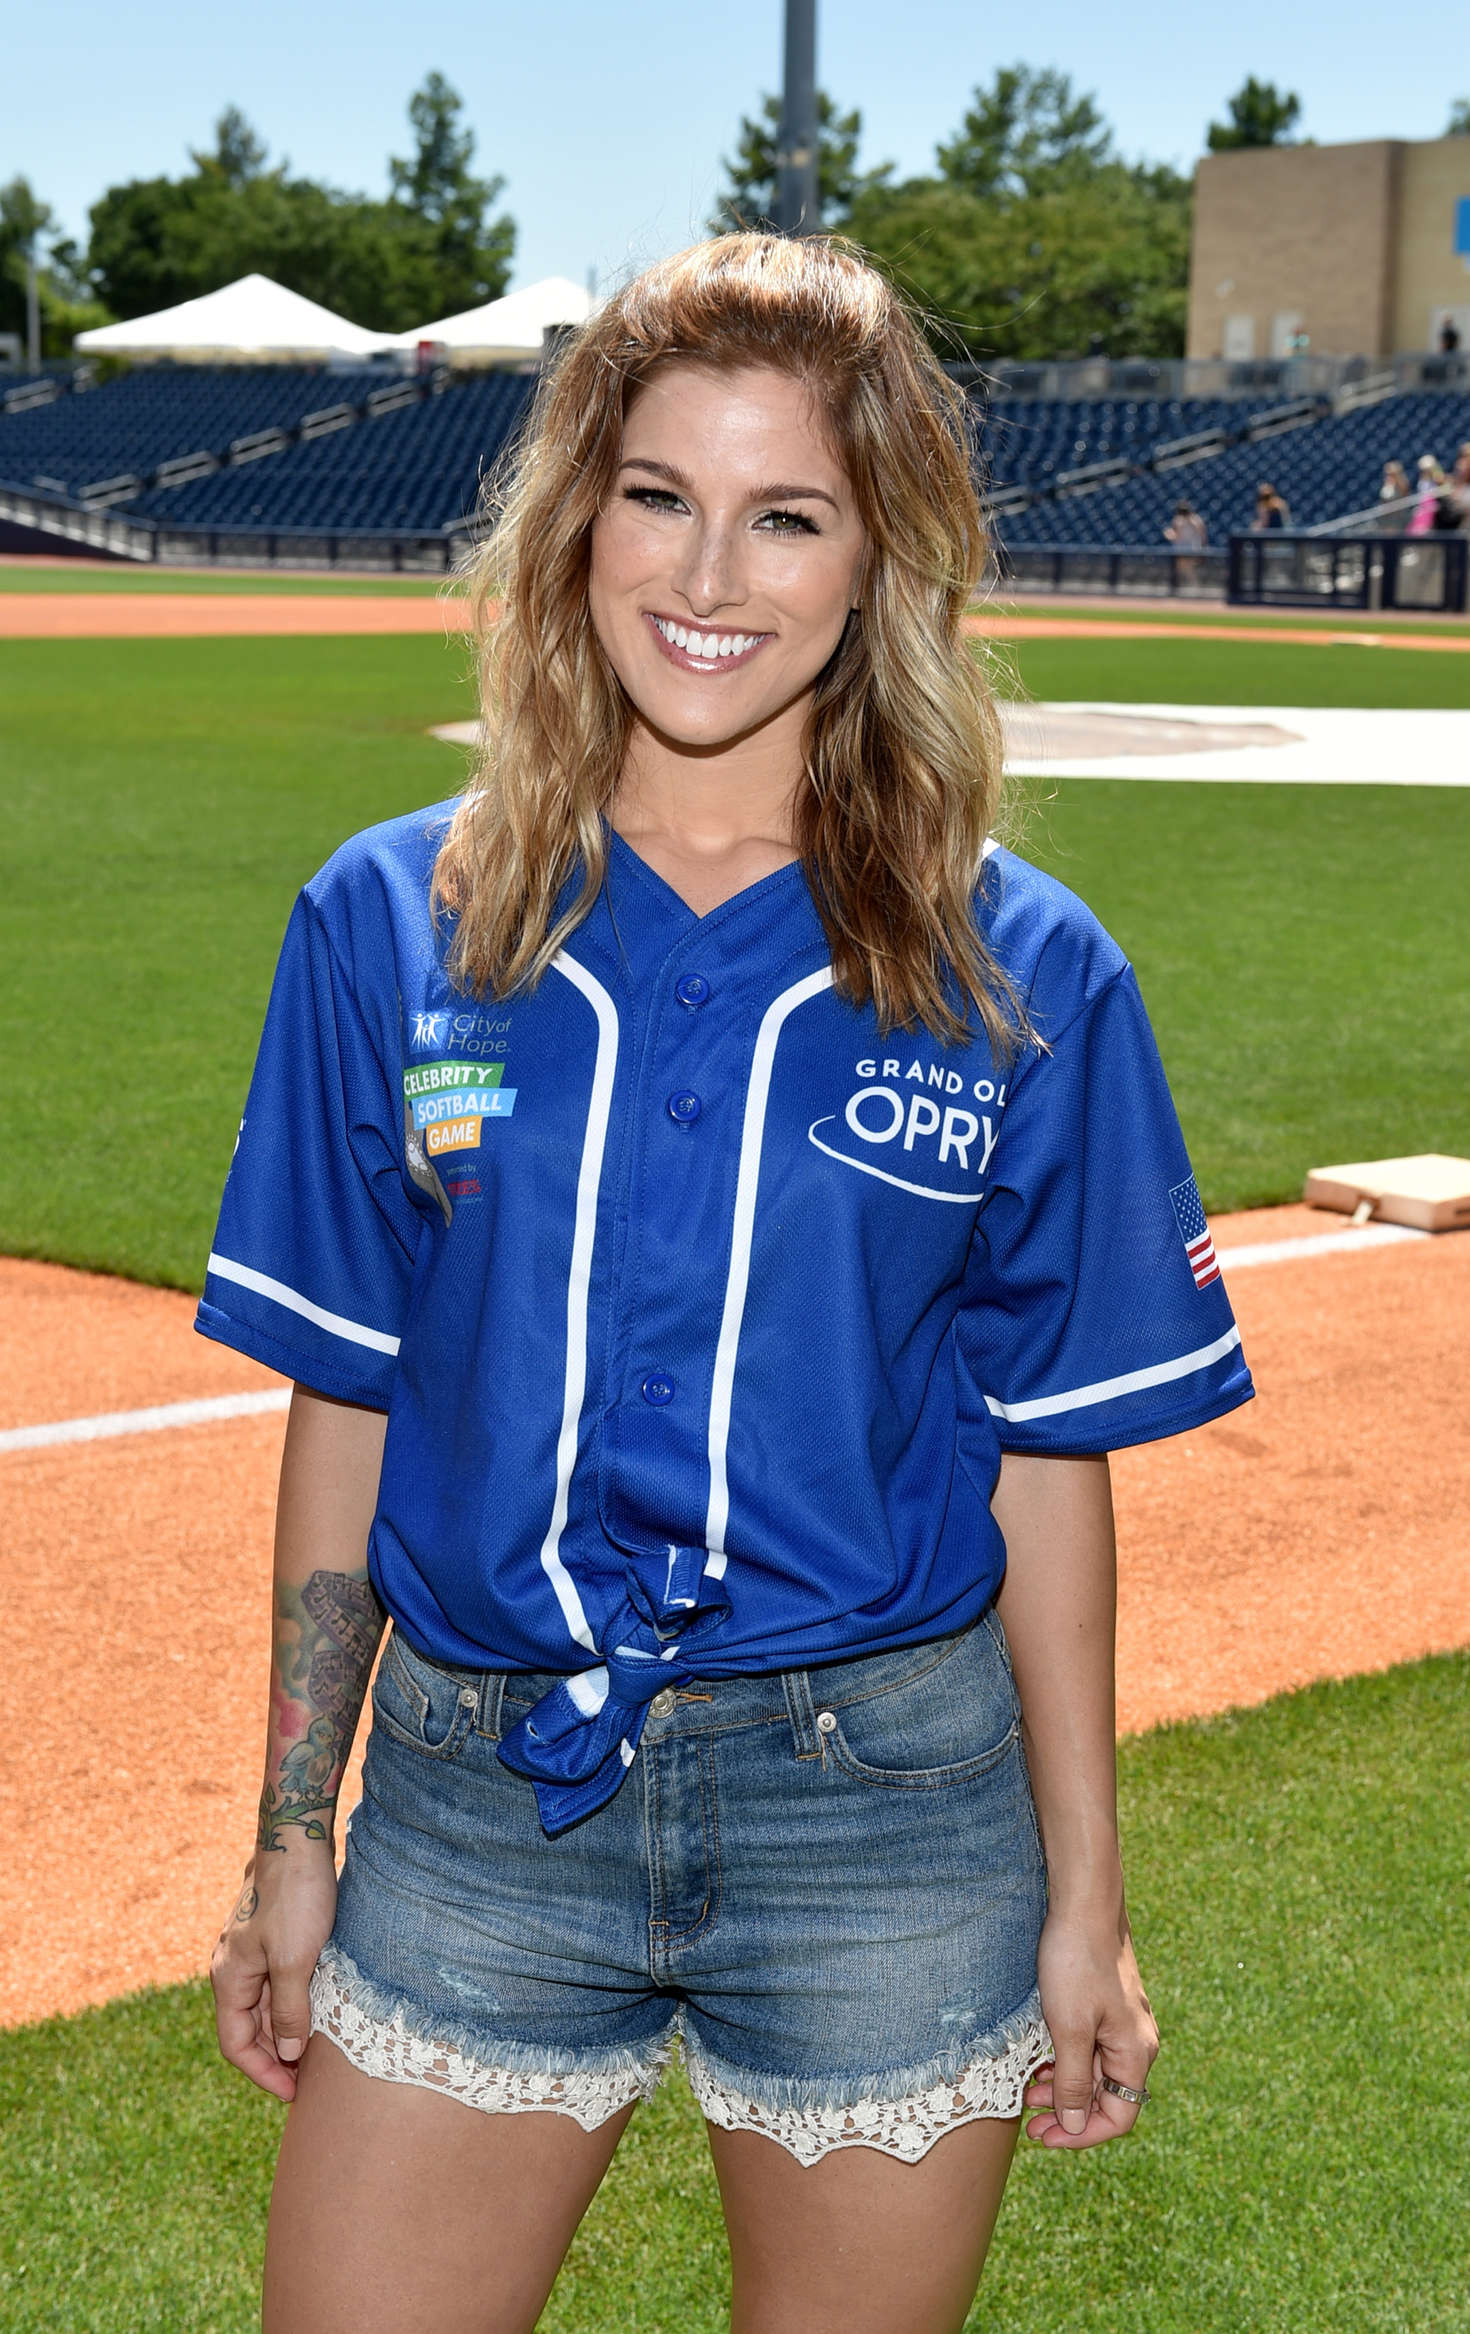 Celebrity softball home run derby